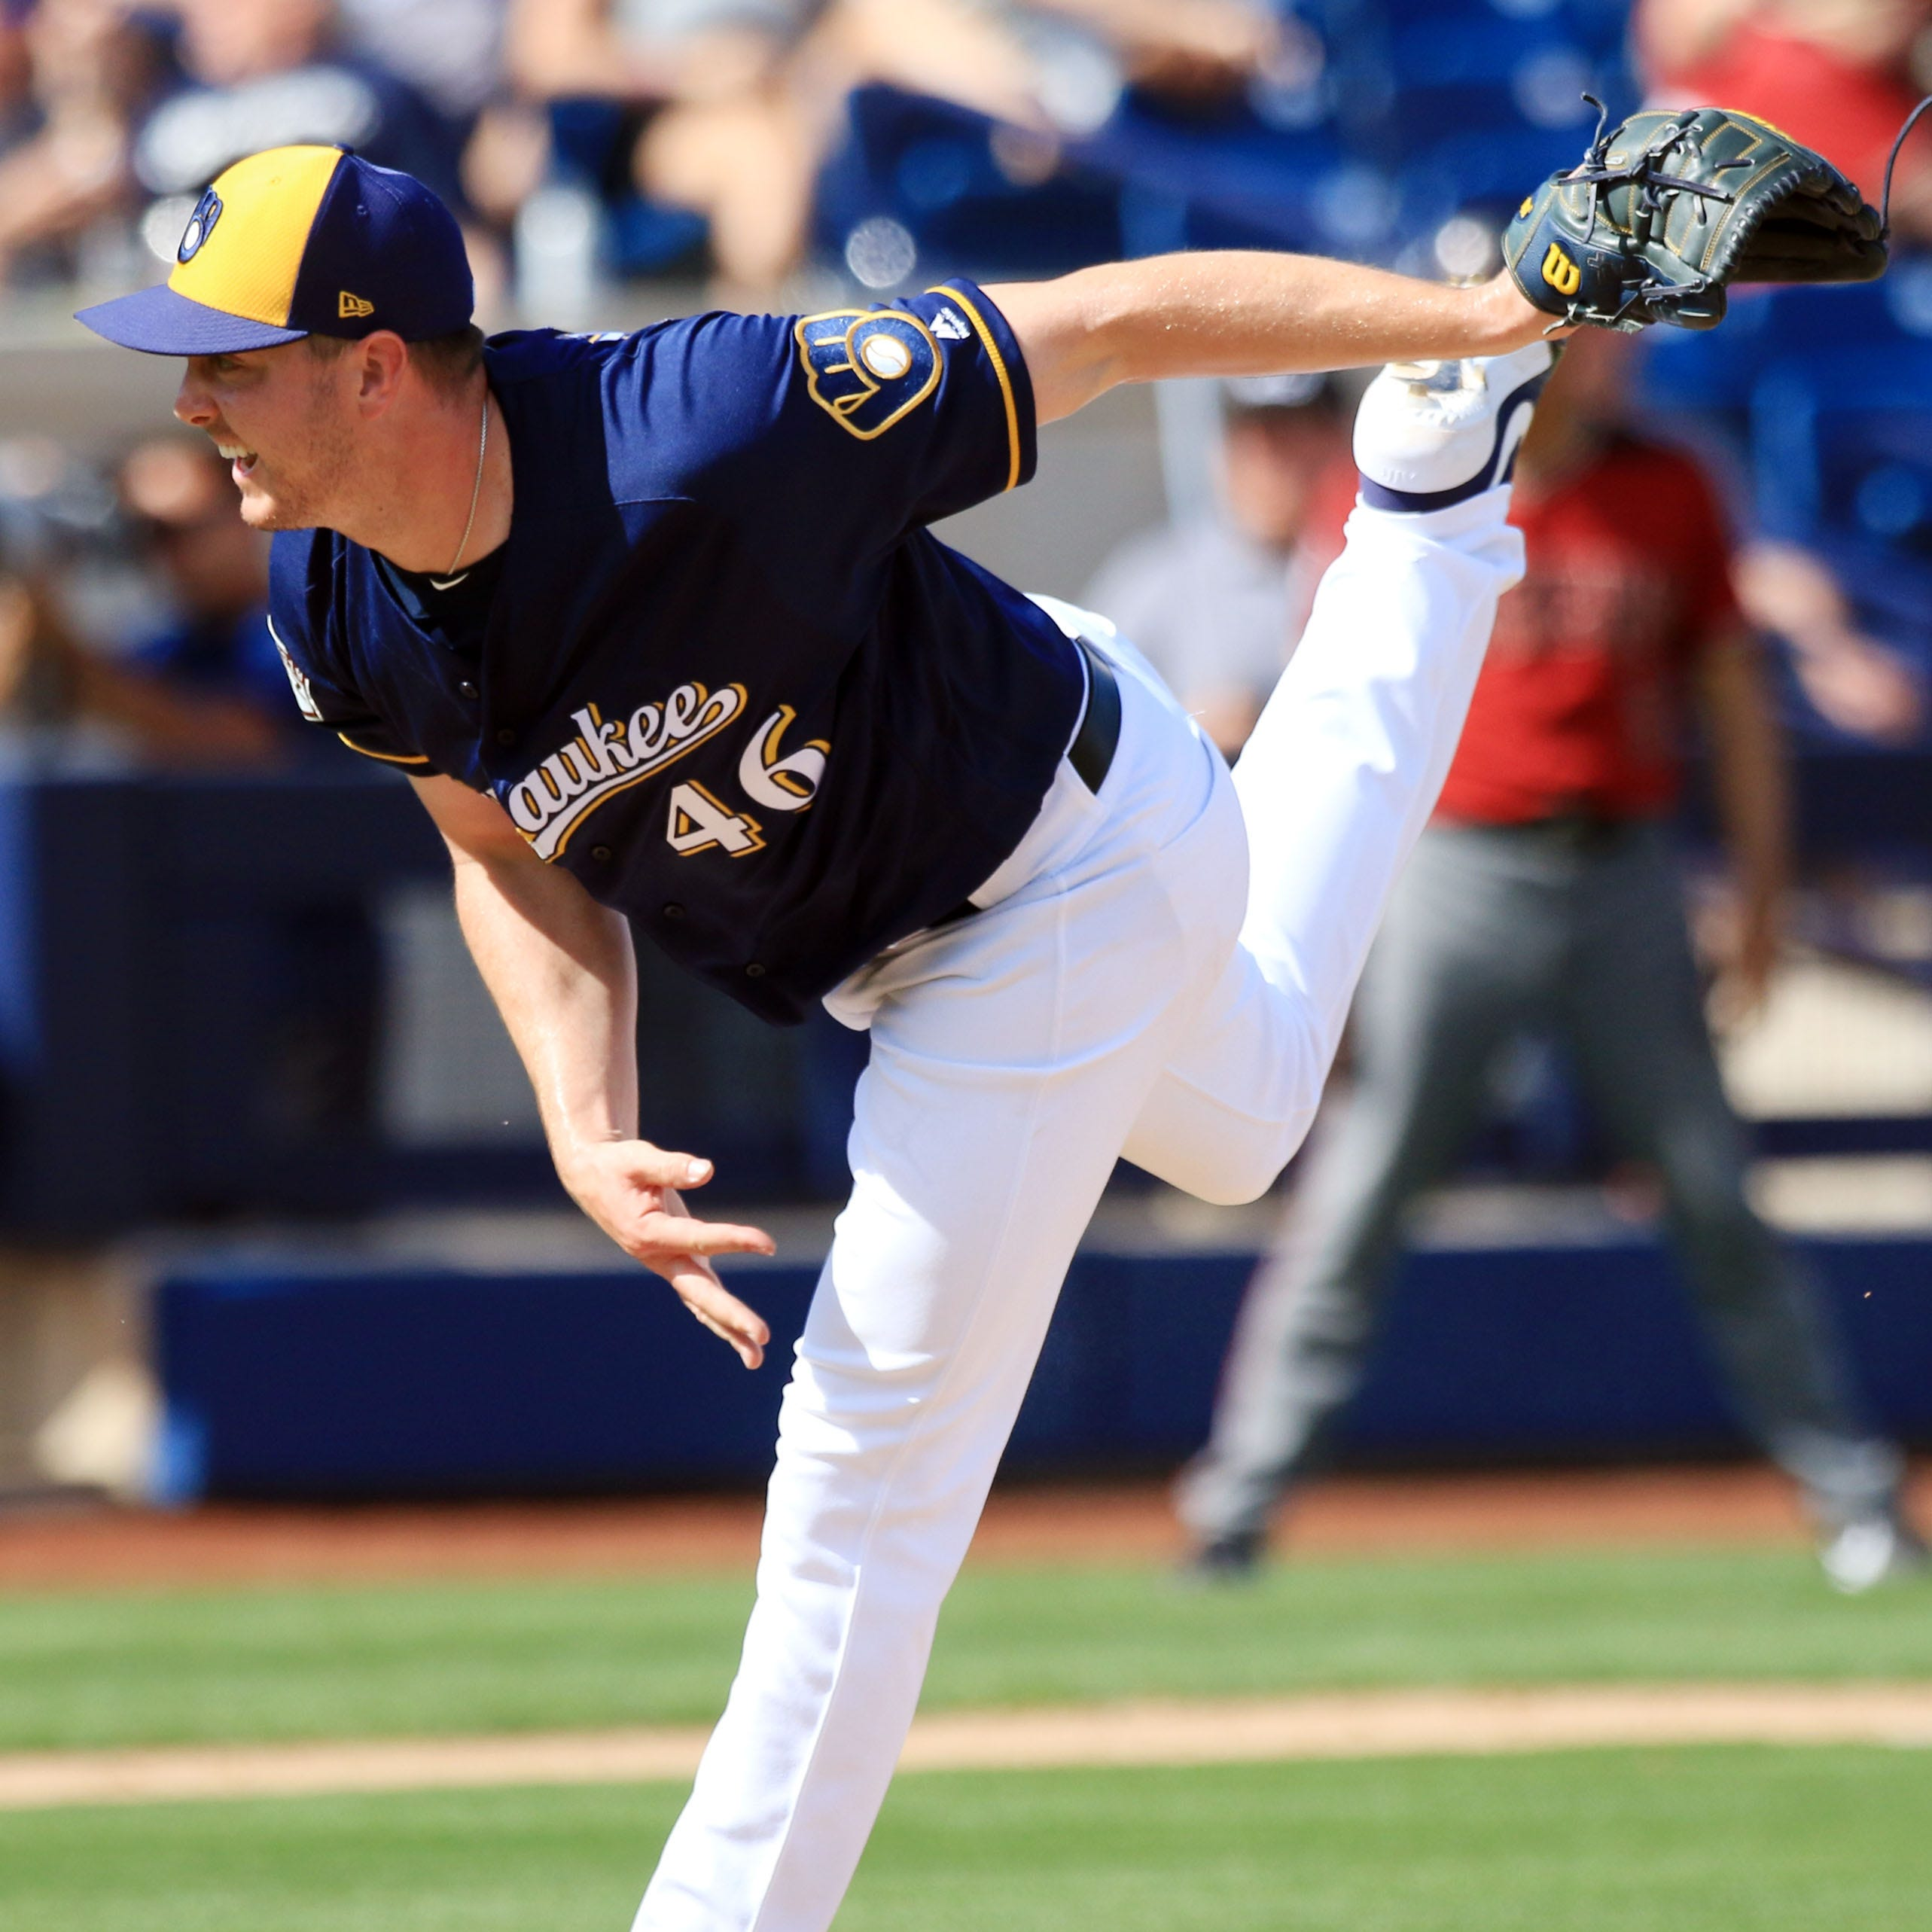 Brewers reliever Corey Knebel will get a second opinion on the 'issue' with his pitching elbow